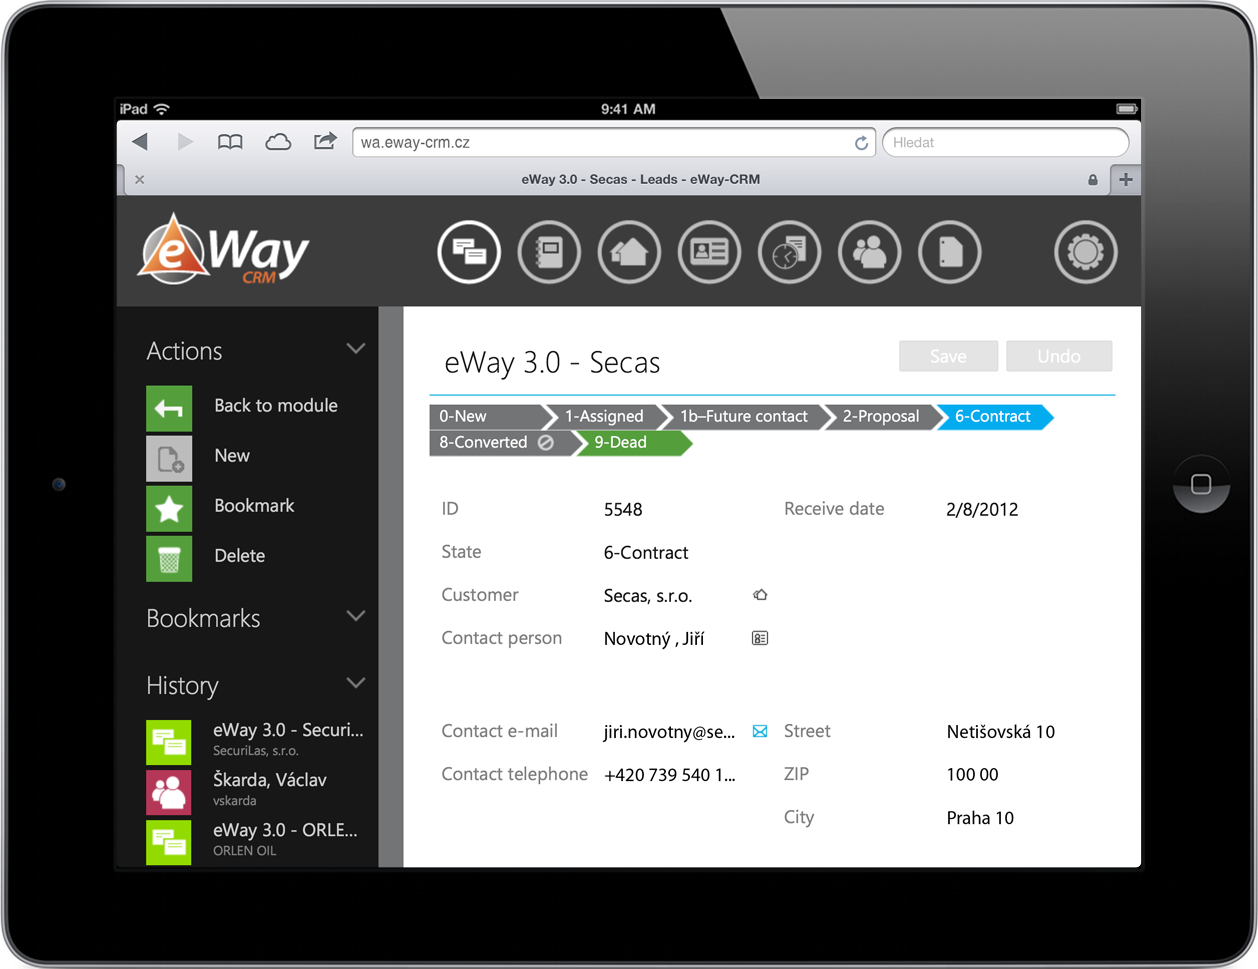 List of items in eWay-CRM Web Access